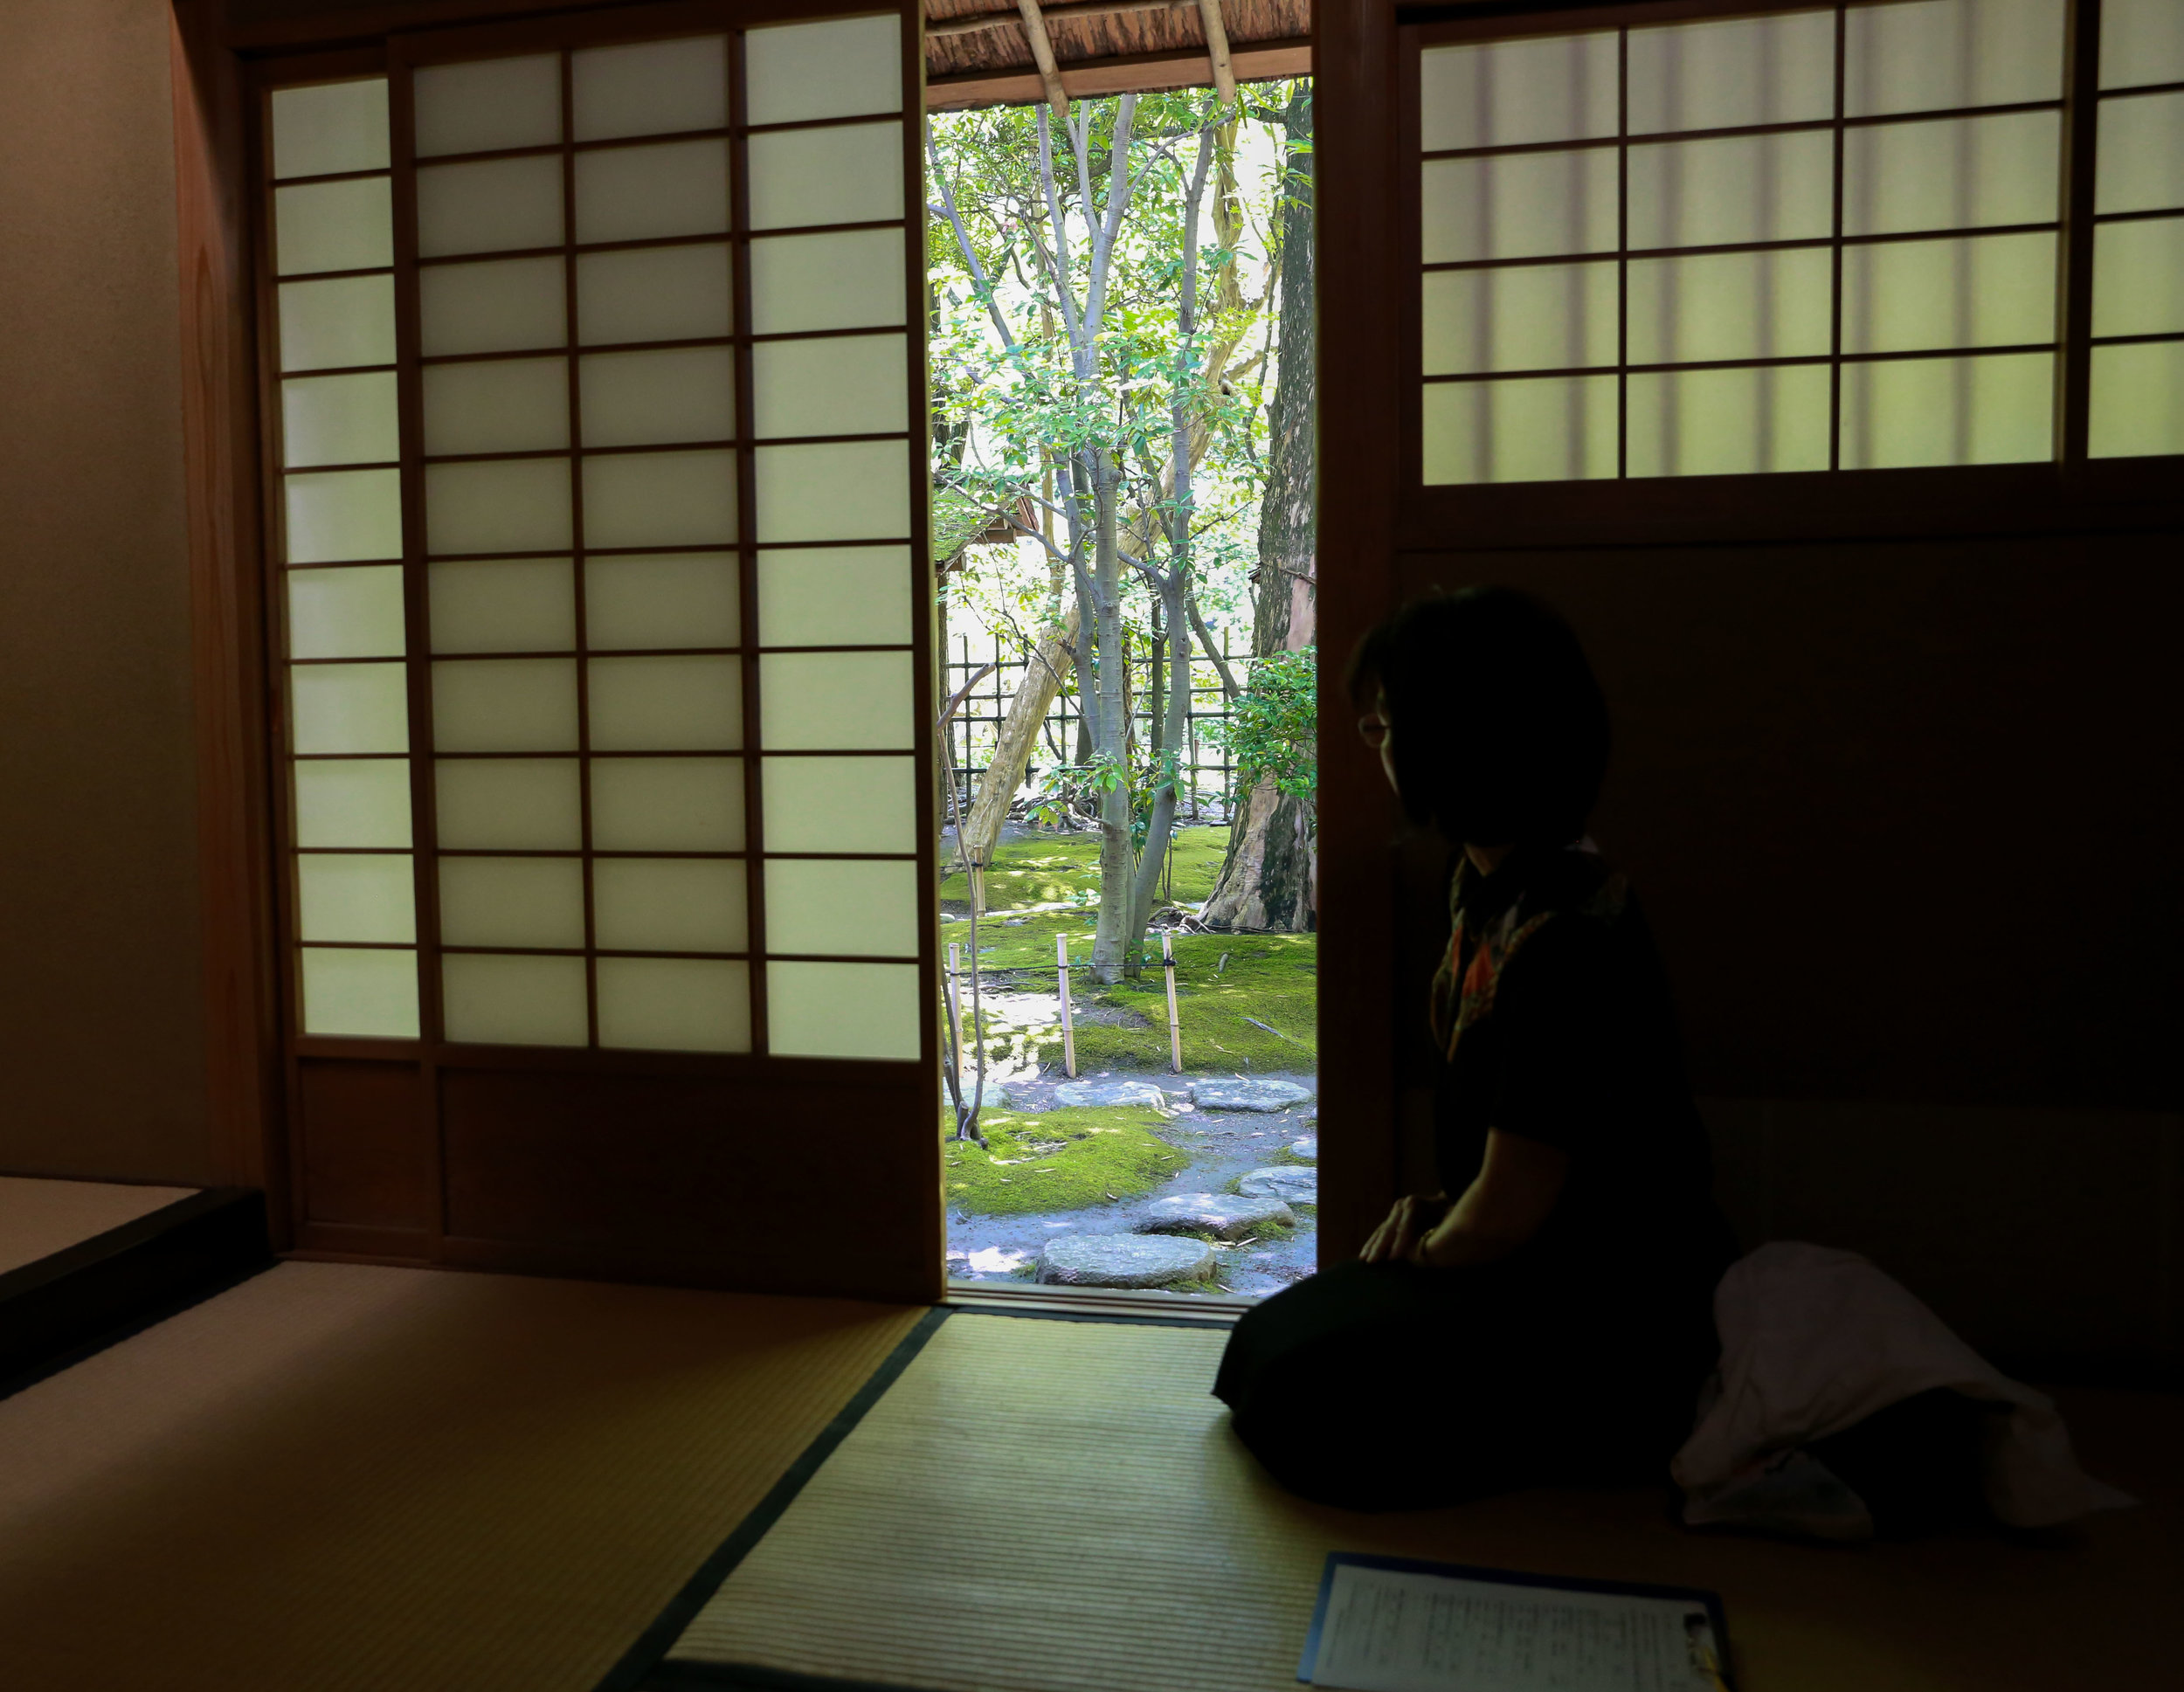 A woman enjoys the view outside the chashitsu at Rakusui-en in Fukuoka, Japan, June 22, 2018.